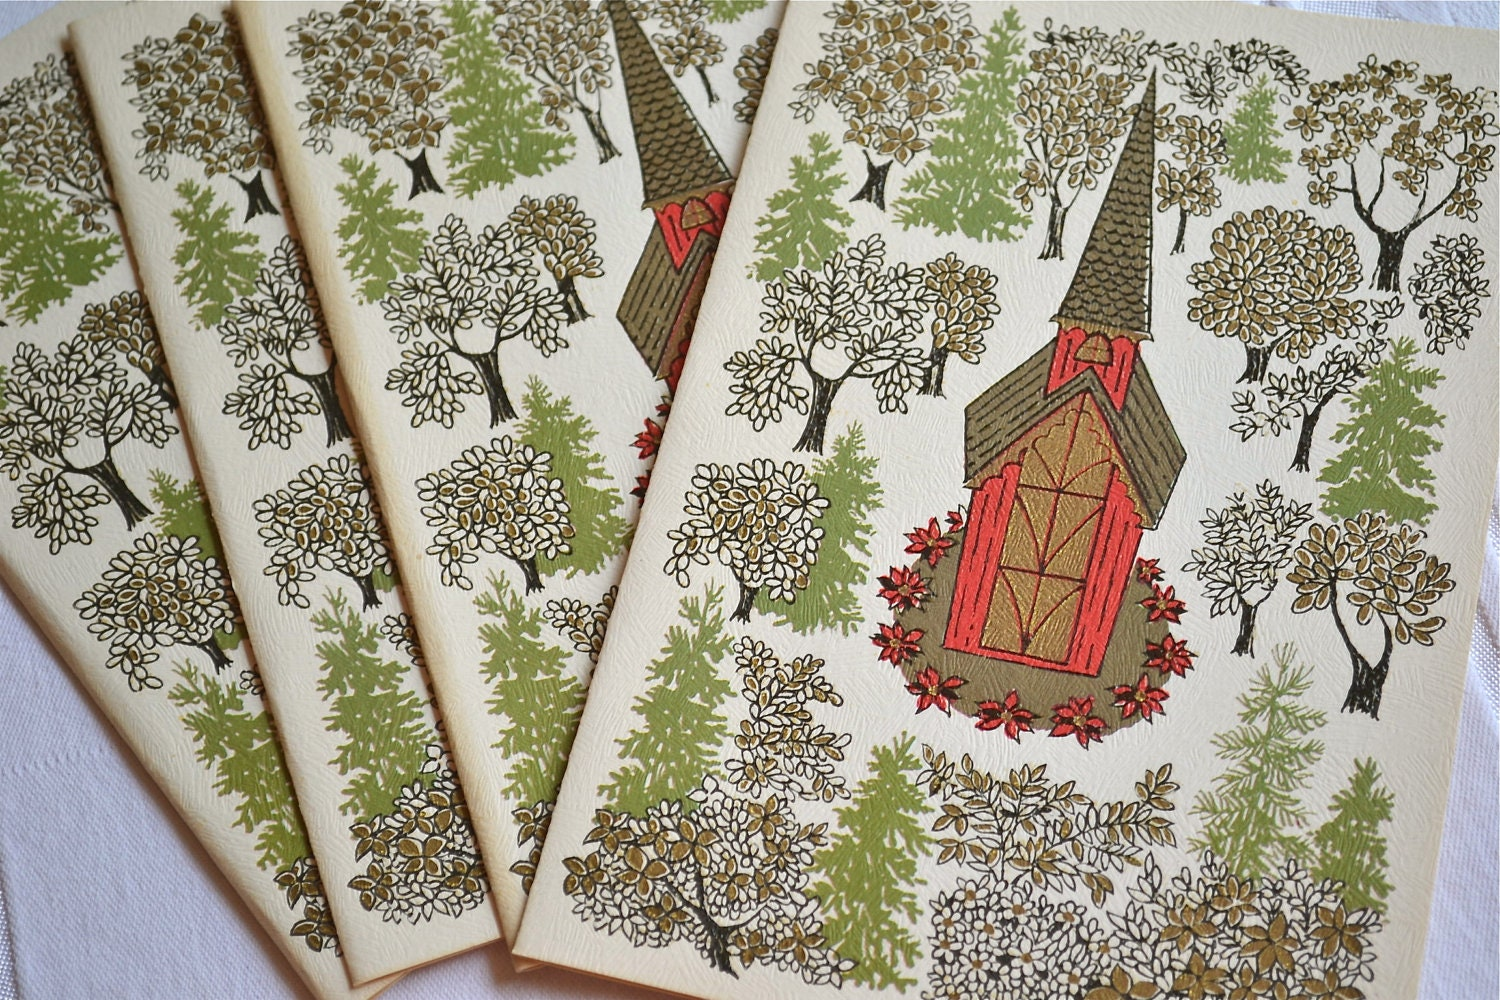 Vintage Christmas Cards - Church Steeple in the Forest - A Set of 5